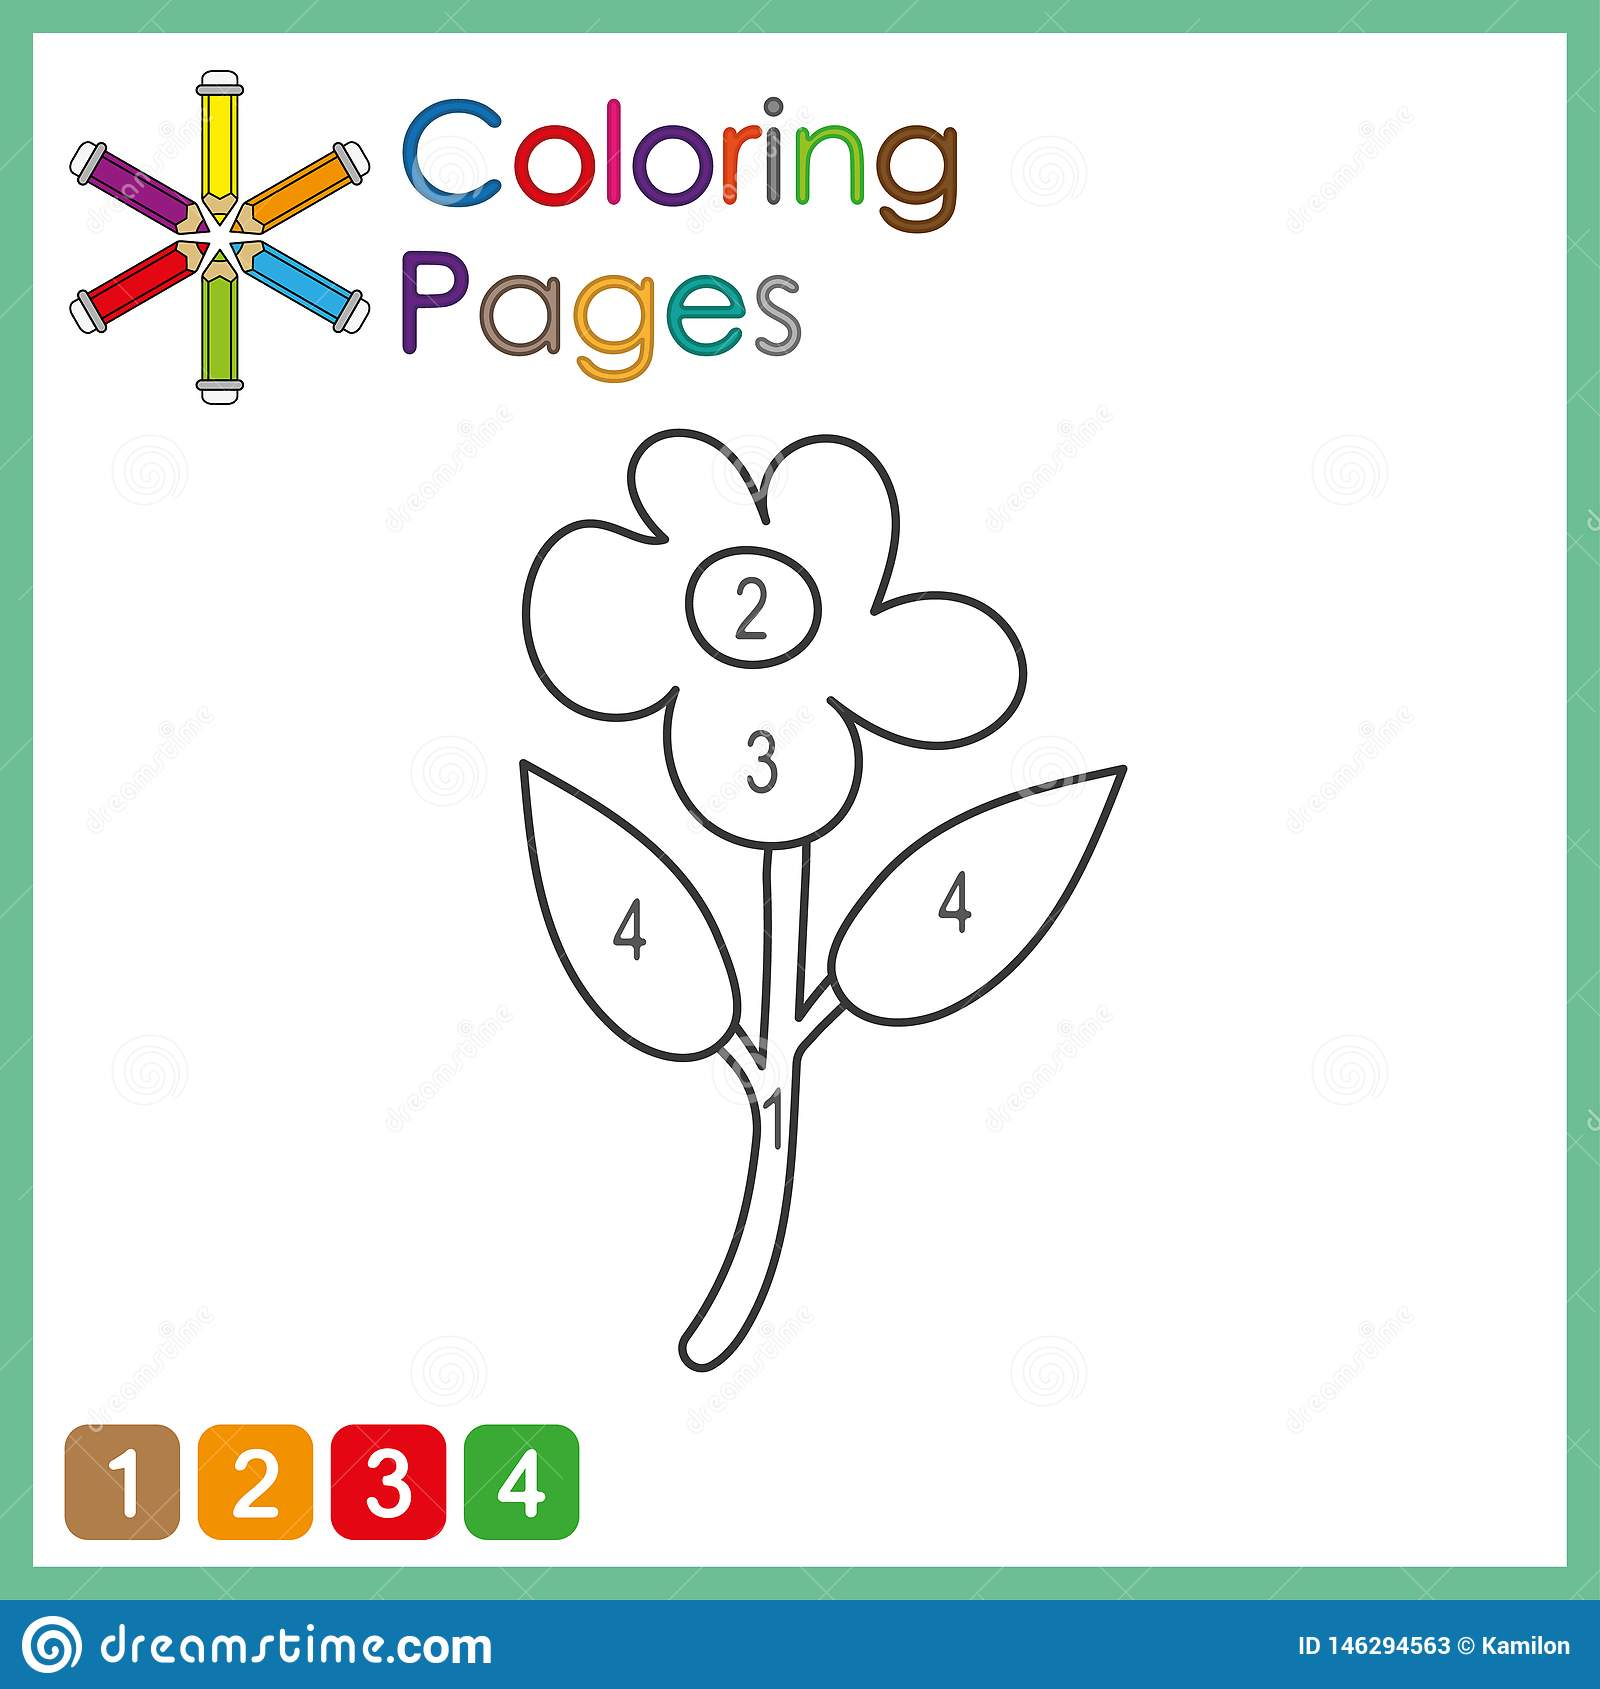 Coloring Page For Kids Color The Parts Of The Object